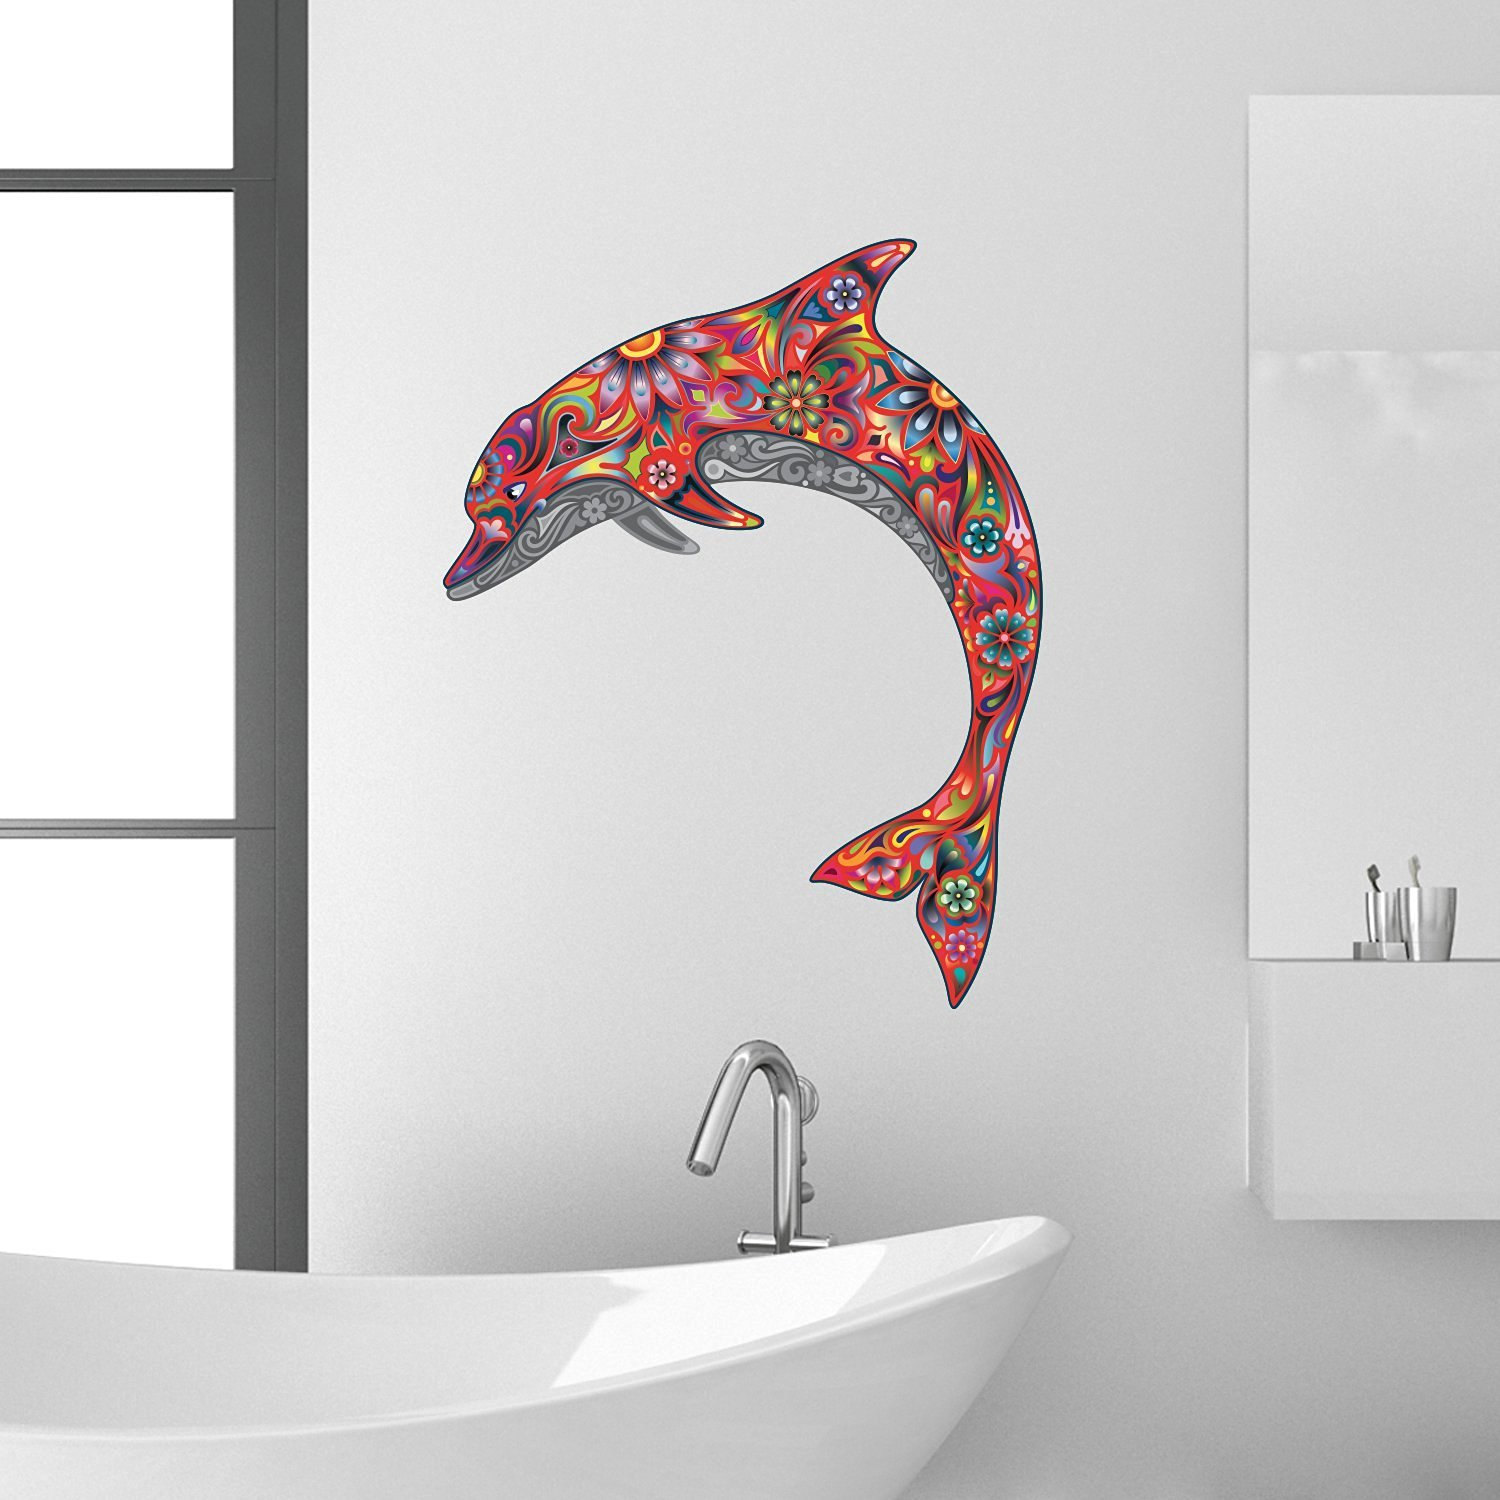 Beautiful red dolphin wall decal sticker mural statement decor beautiful red dolphin wall decal sticker mural statement decor item ideal for any room amipublicfo Image collections